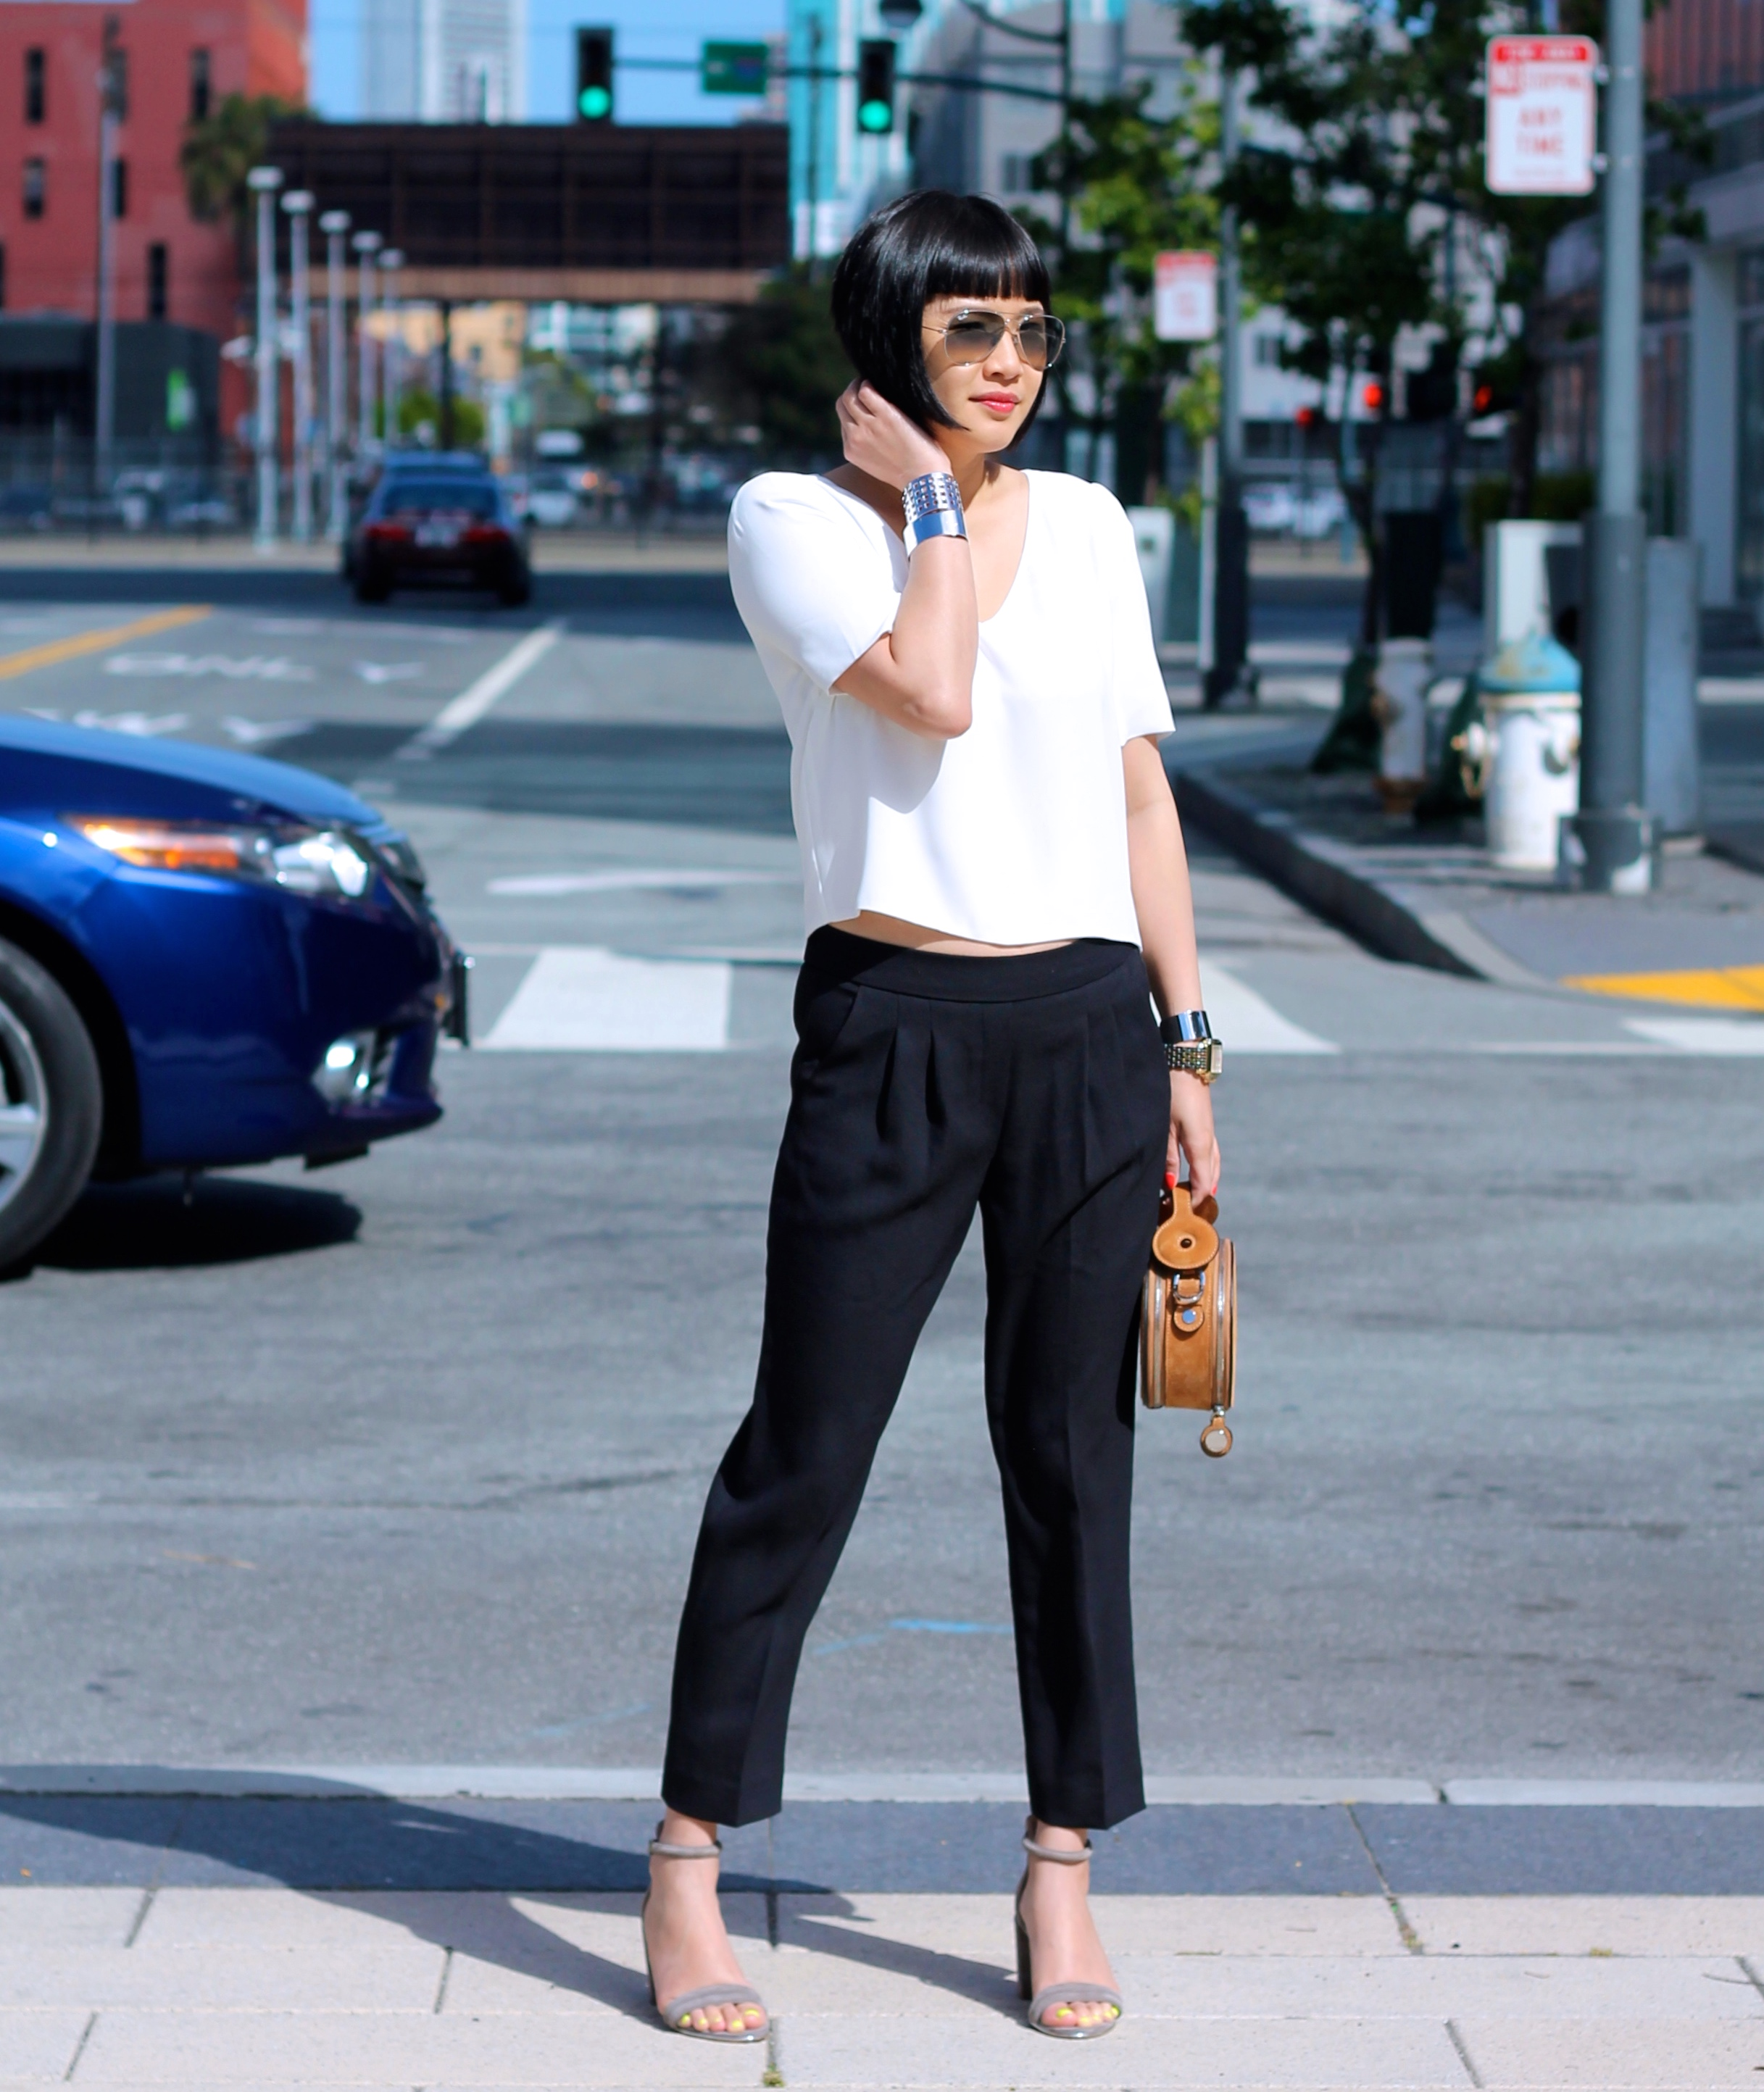 Aritzia shirt and pants, Kenneth Cole shoes, Ray-Ban sunglasses, Carven bag, Svelte Metals cuffs, Michele watch